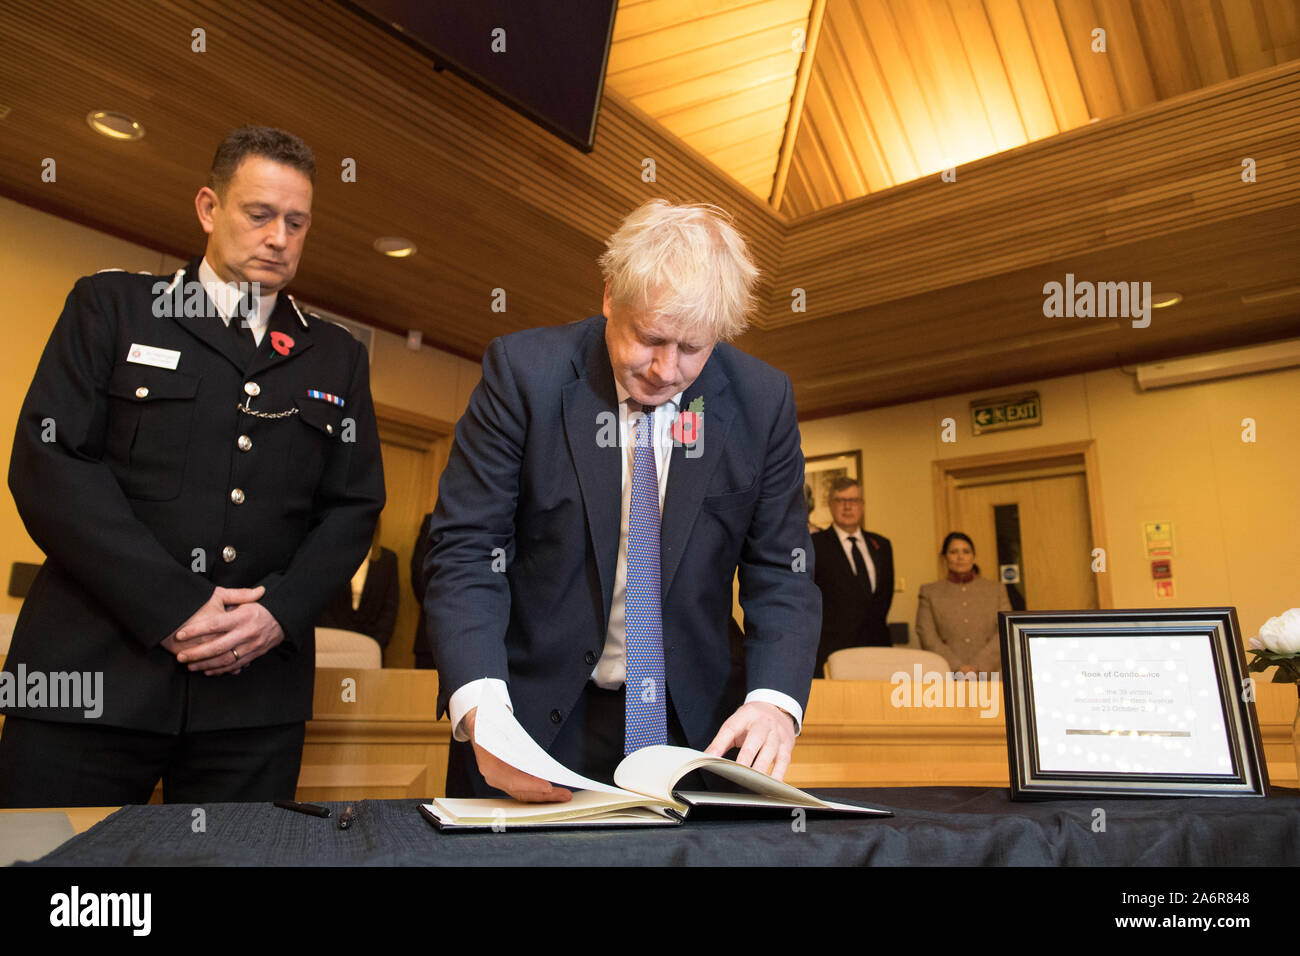 Prime Minister Boris Johnson signs a book of condolence, watched by the Chief Constable of Essex Police, Ben-Julian Harrington, during a visit to Thurrock Council Offices in Essex after the bodies of 39 people were found in a lorry container last week. Stock Photo